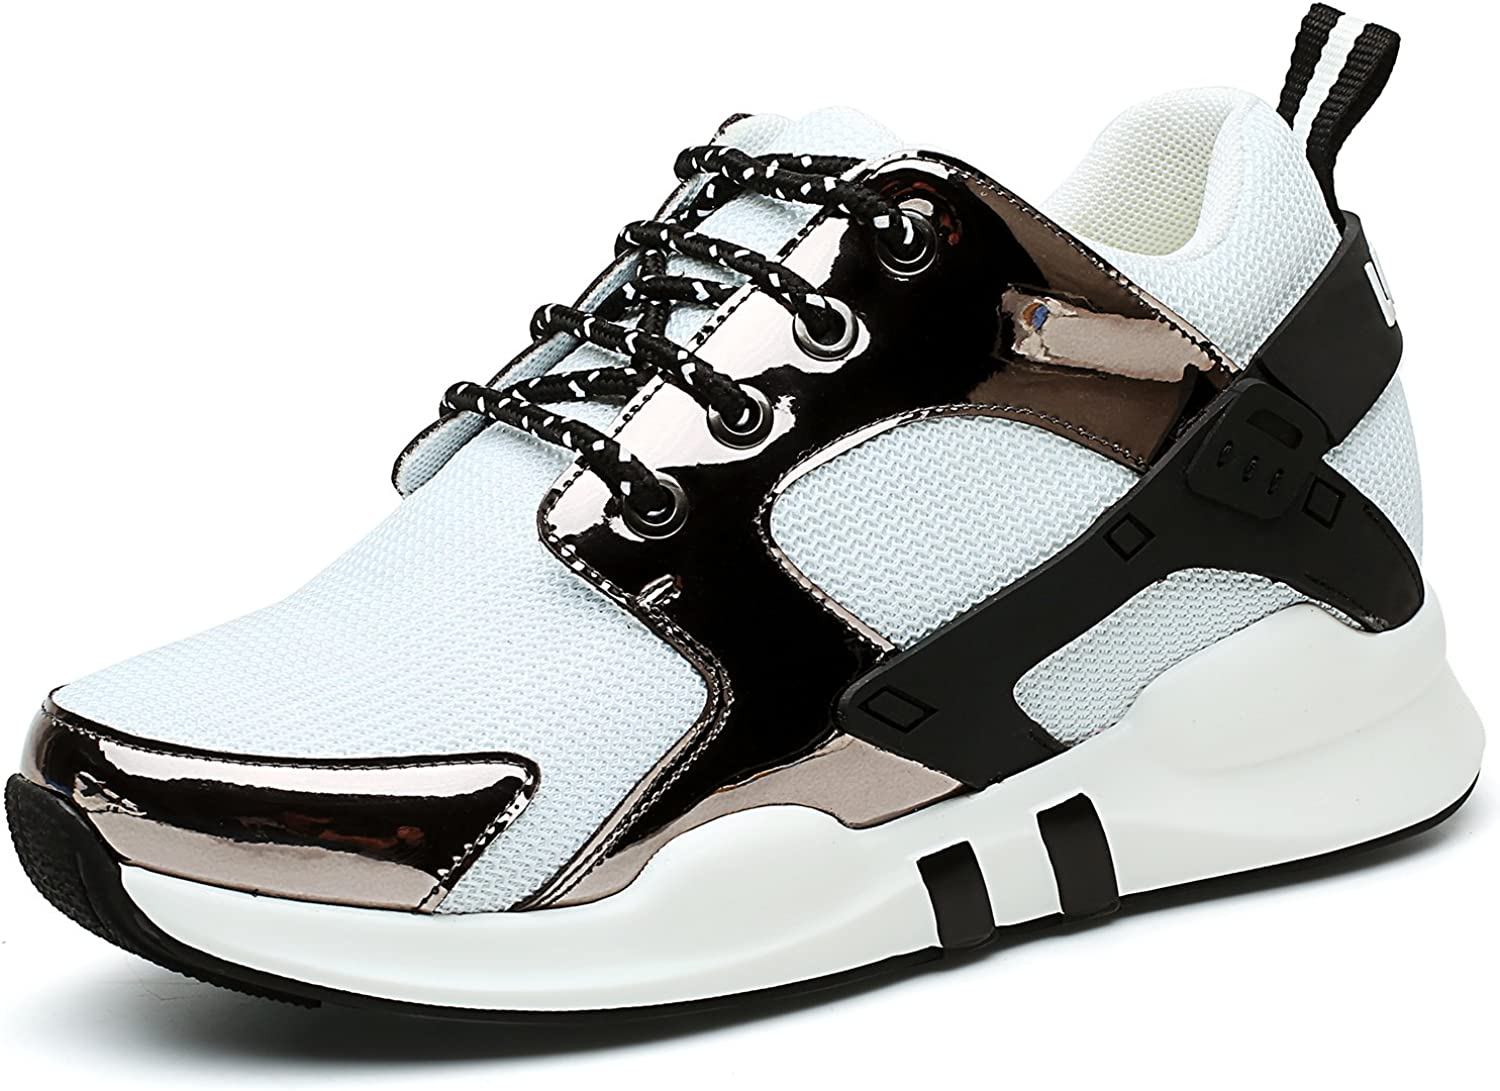 Elevator Sneaker Fashion Casual Shoes